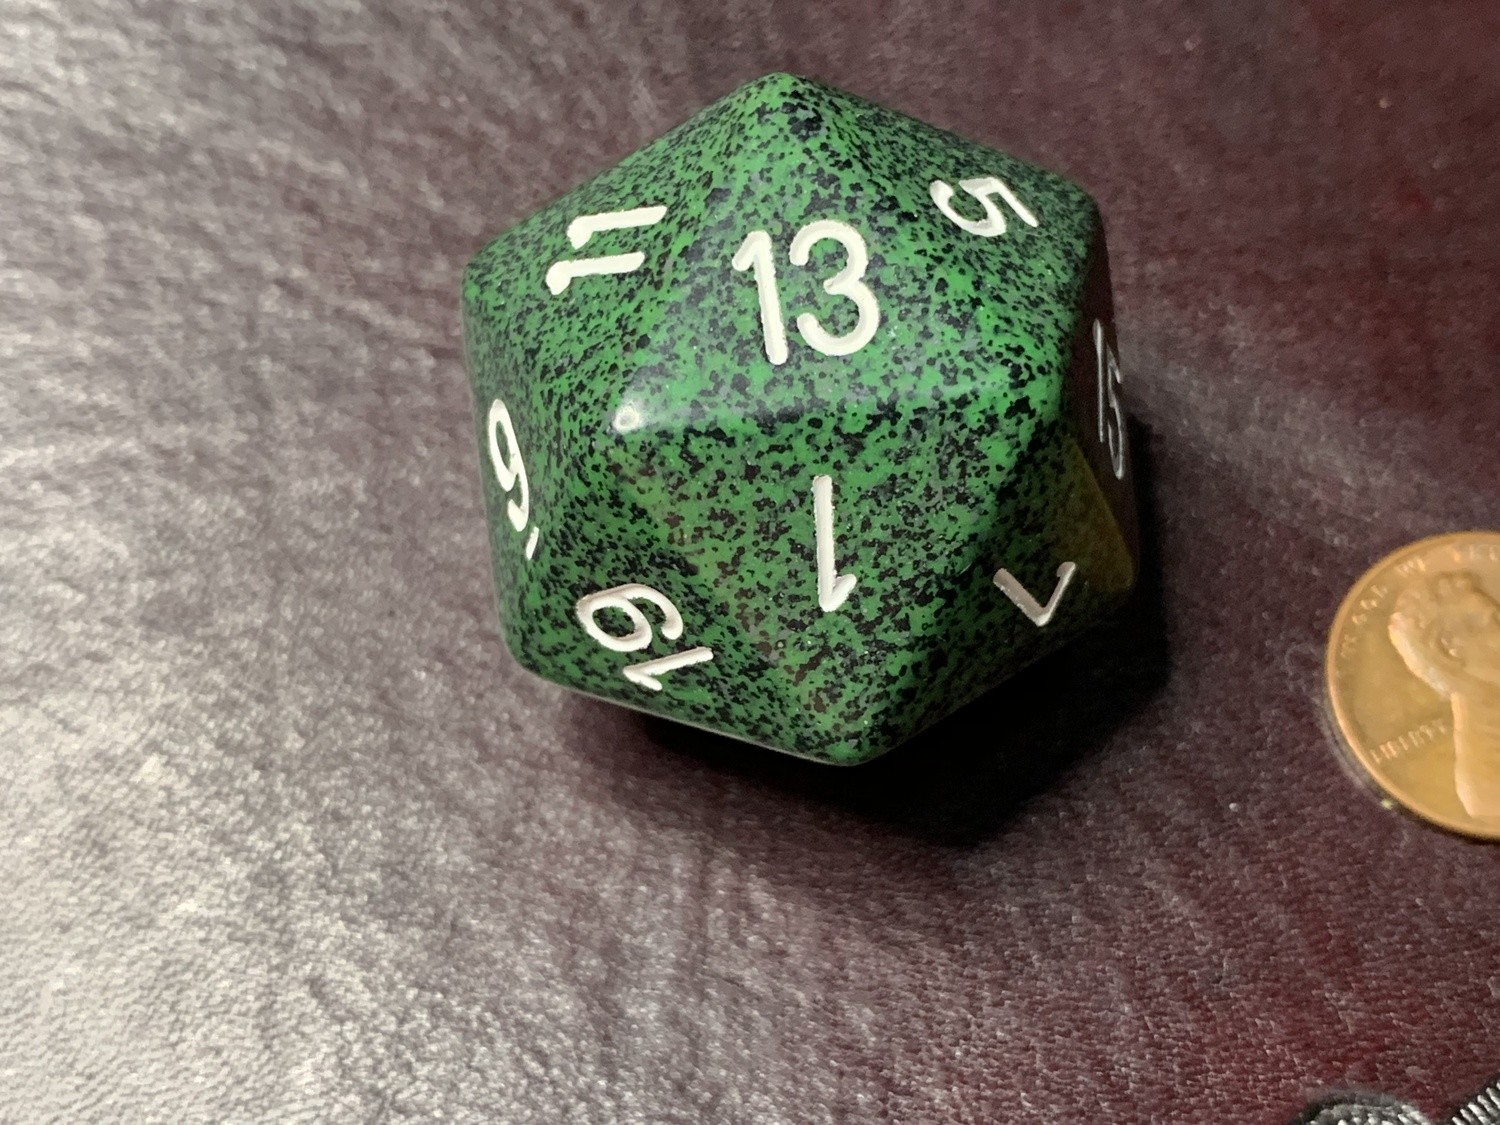 Jumbo 34mm Speckled D20 Die Green & Black with White Extra Large Counter Dice